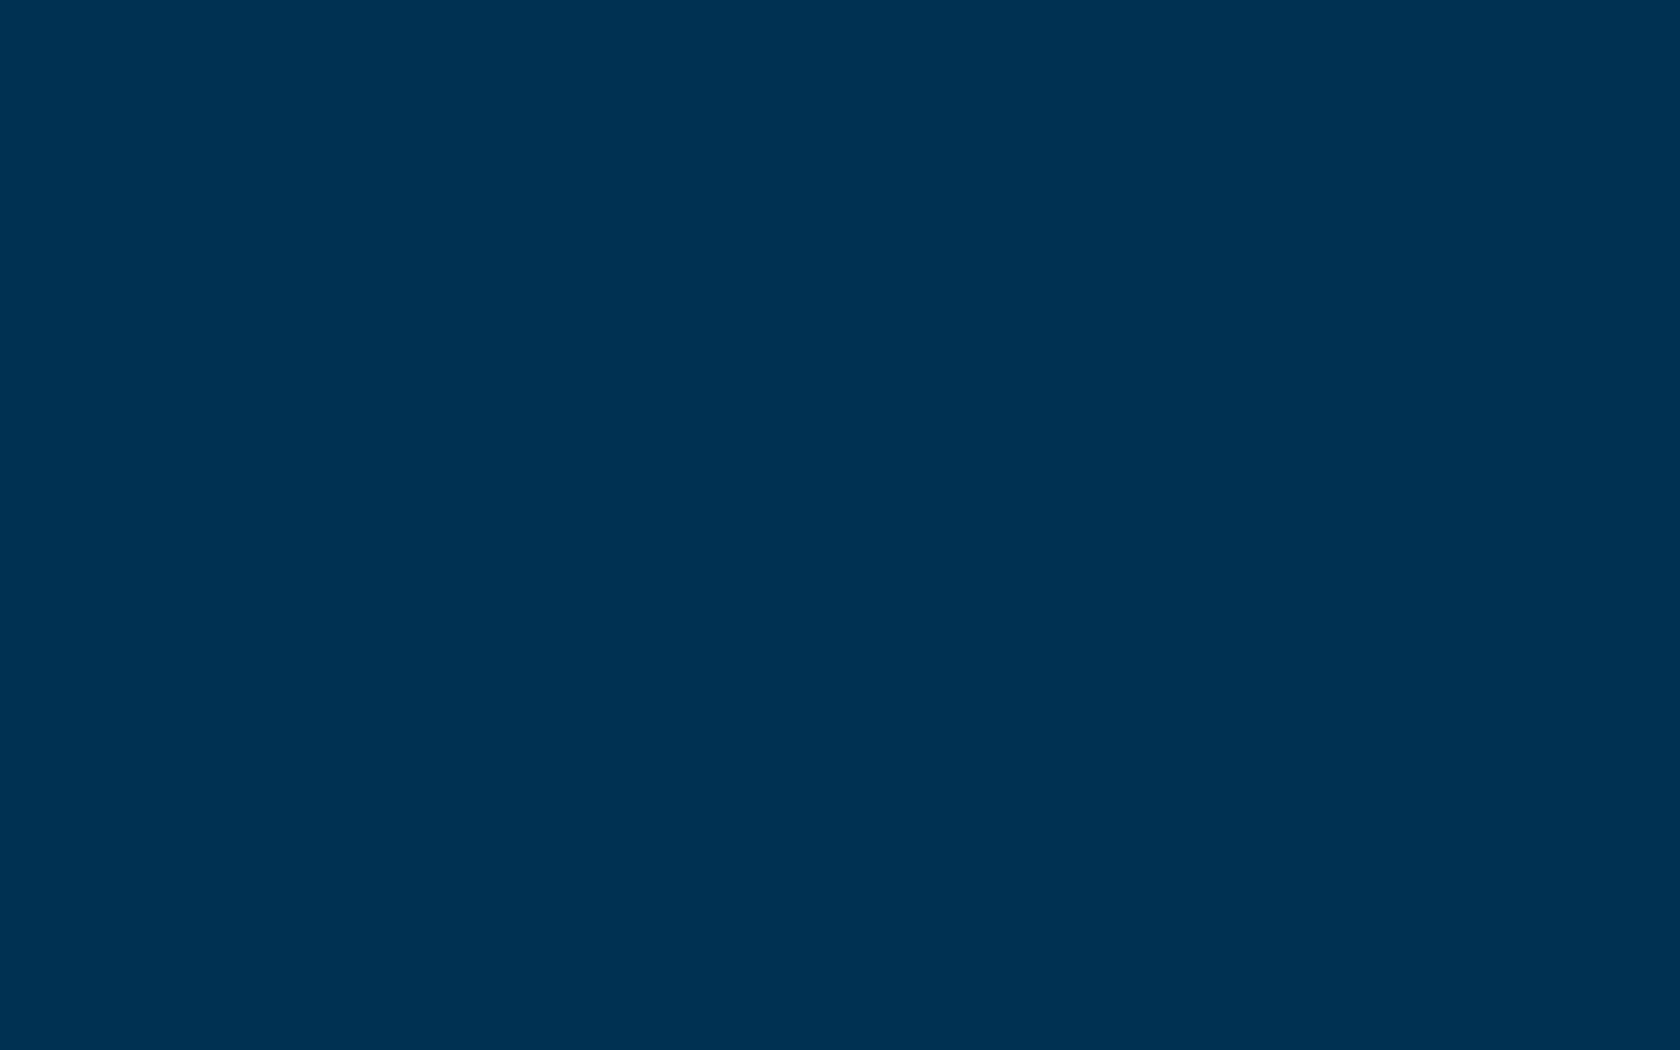 1680x1050 Prussian Blue Solid Color Background